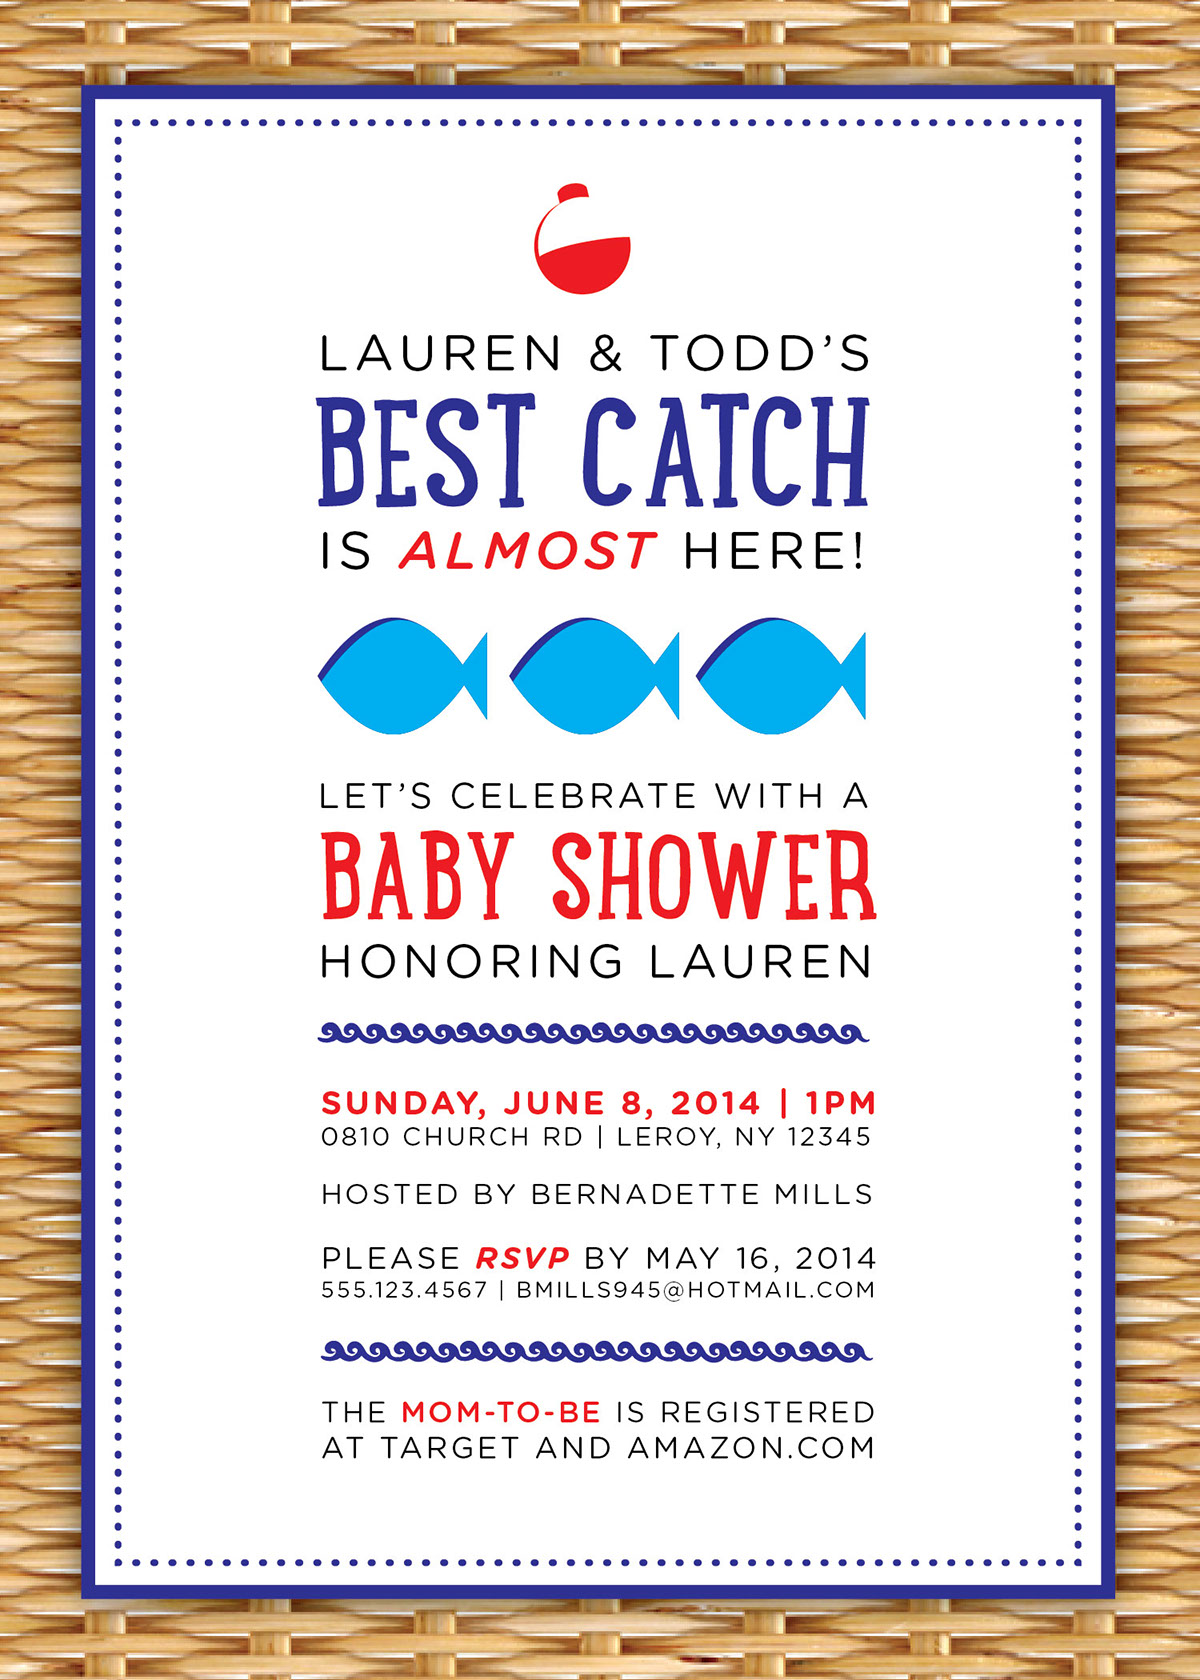 Best Catch: Fishing Themed Baby Shower Invitation on Behance